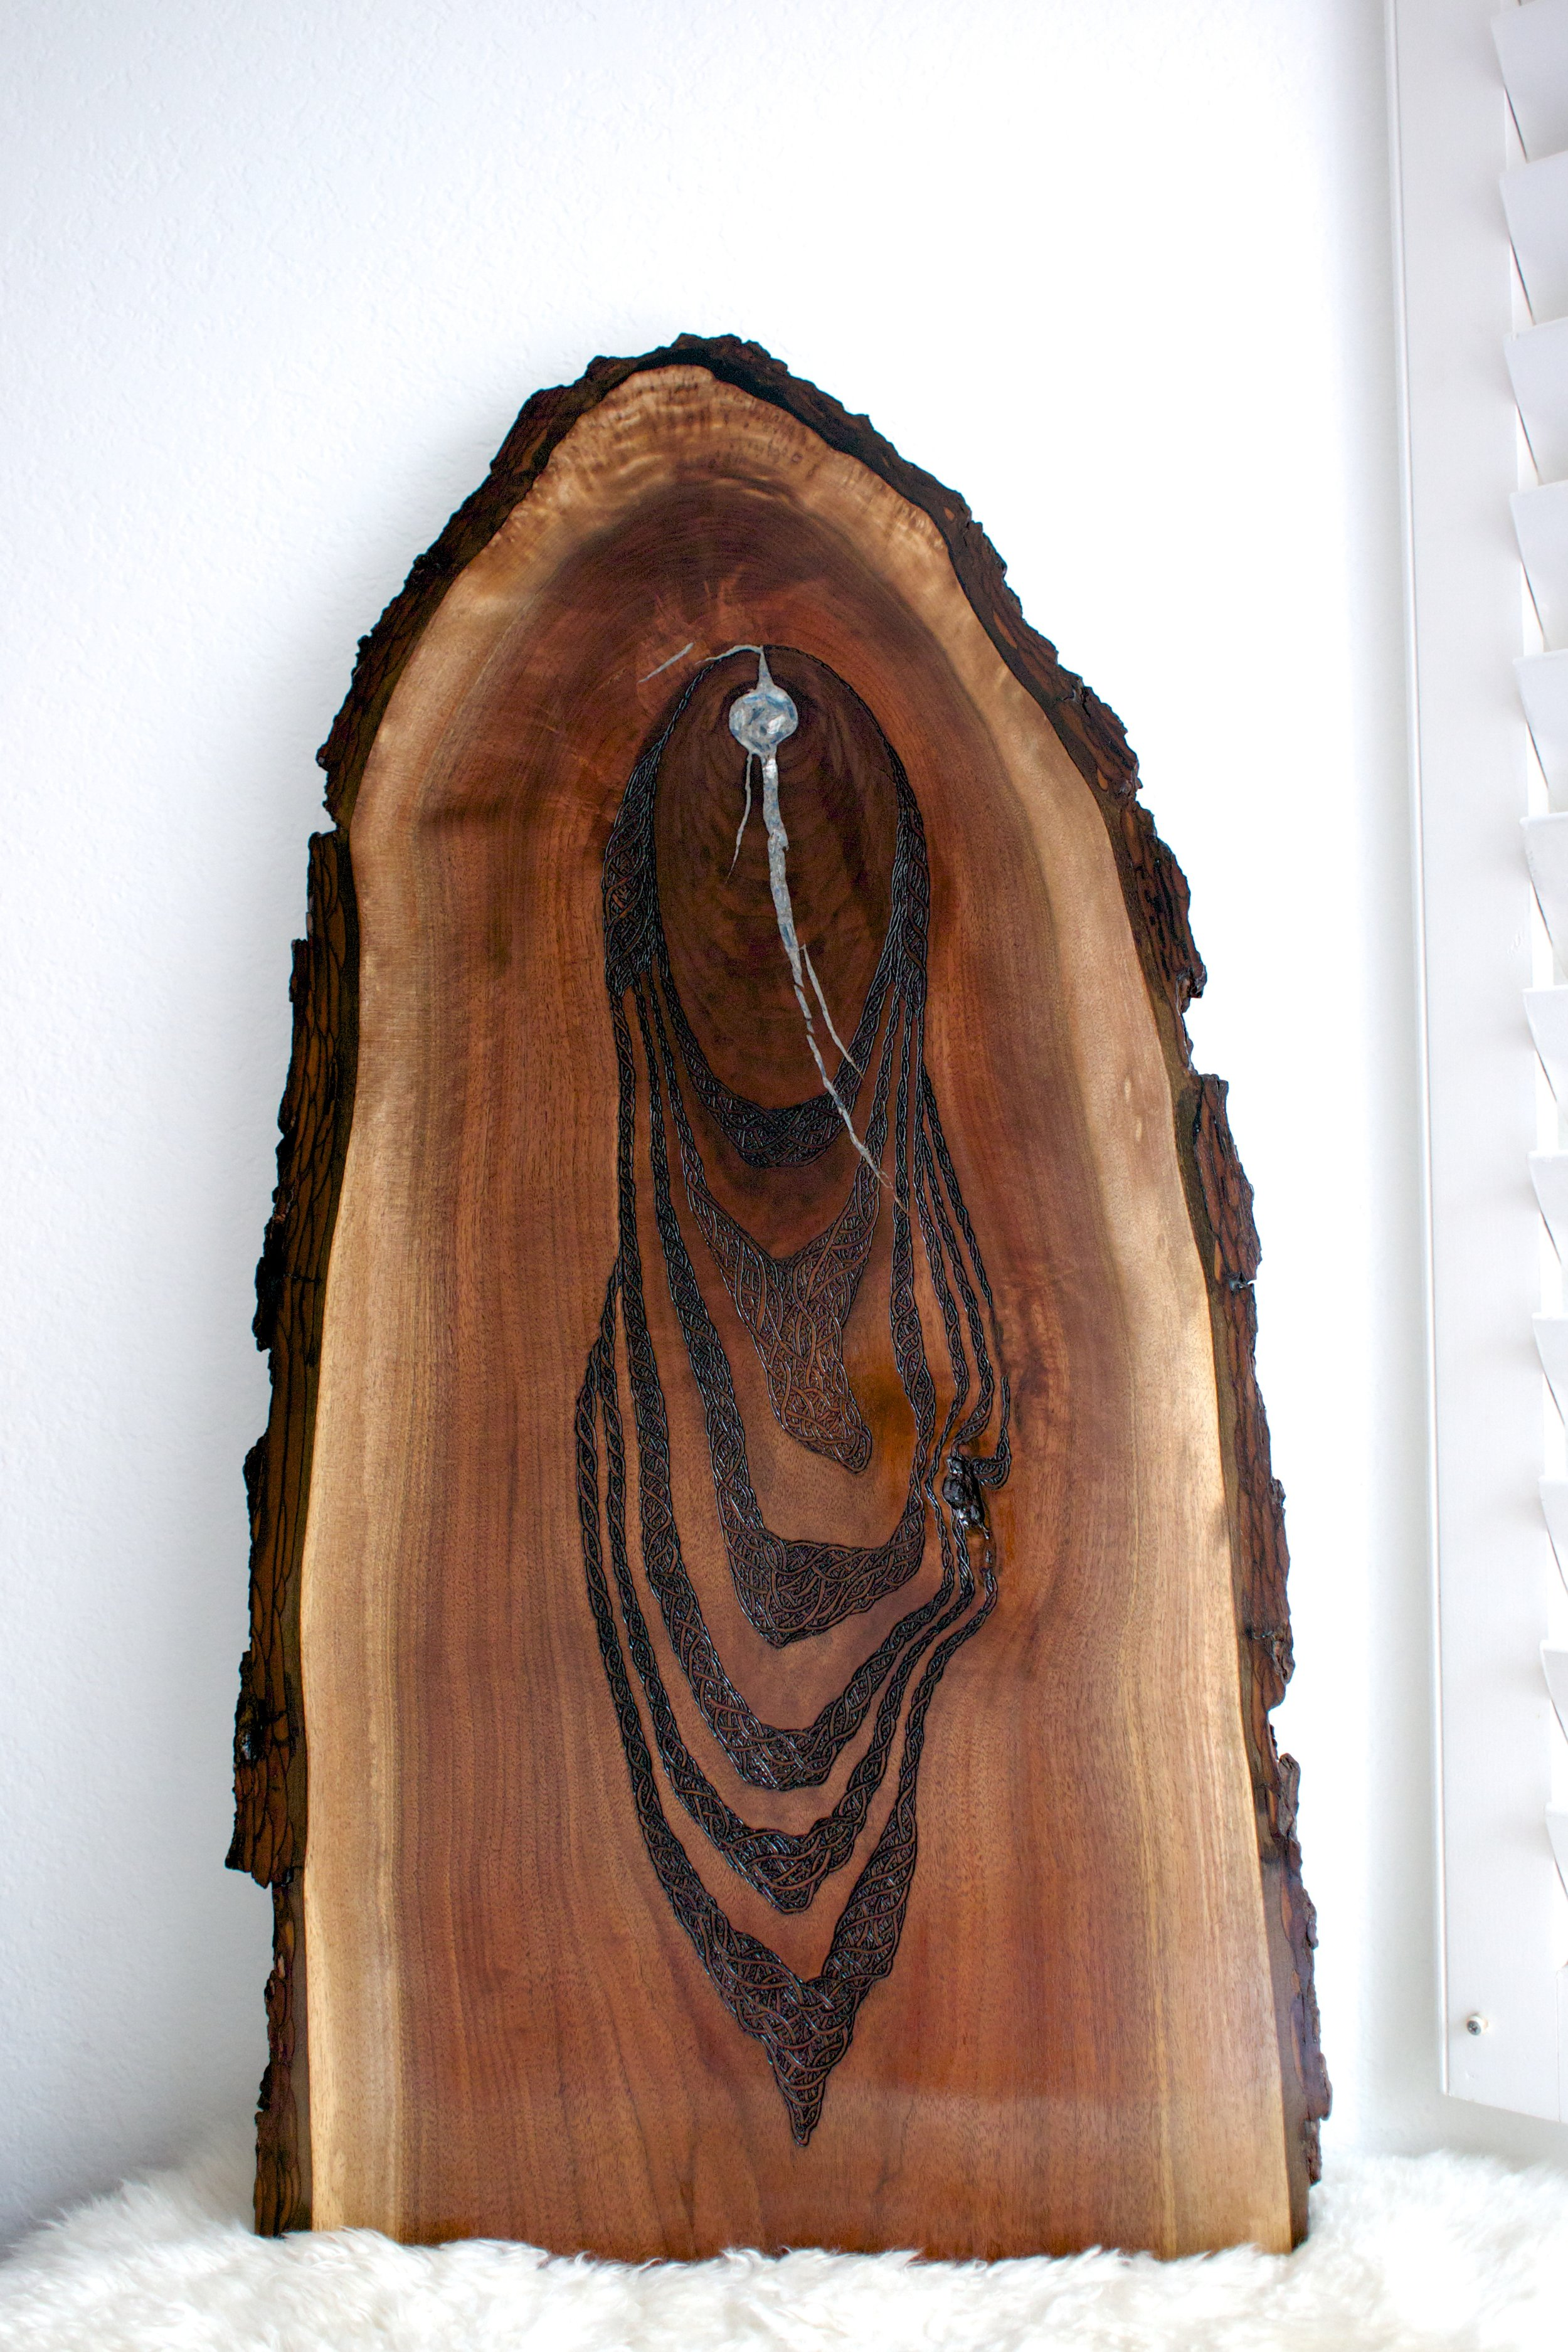 Shape Shifter (2016)  Wood Burning on Black Walnut Live Edge Slab Kyanite Crystal Inlay 37 in x 2 in x 18.5 in $4,000.00   For Inquiry Email bzartsgallery@gmail.com